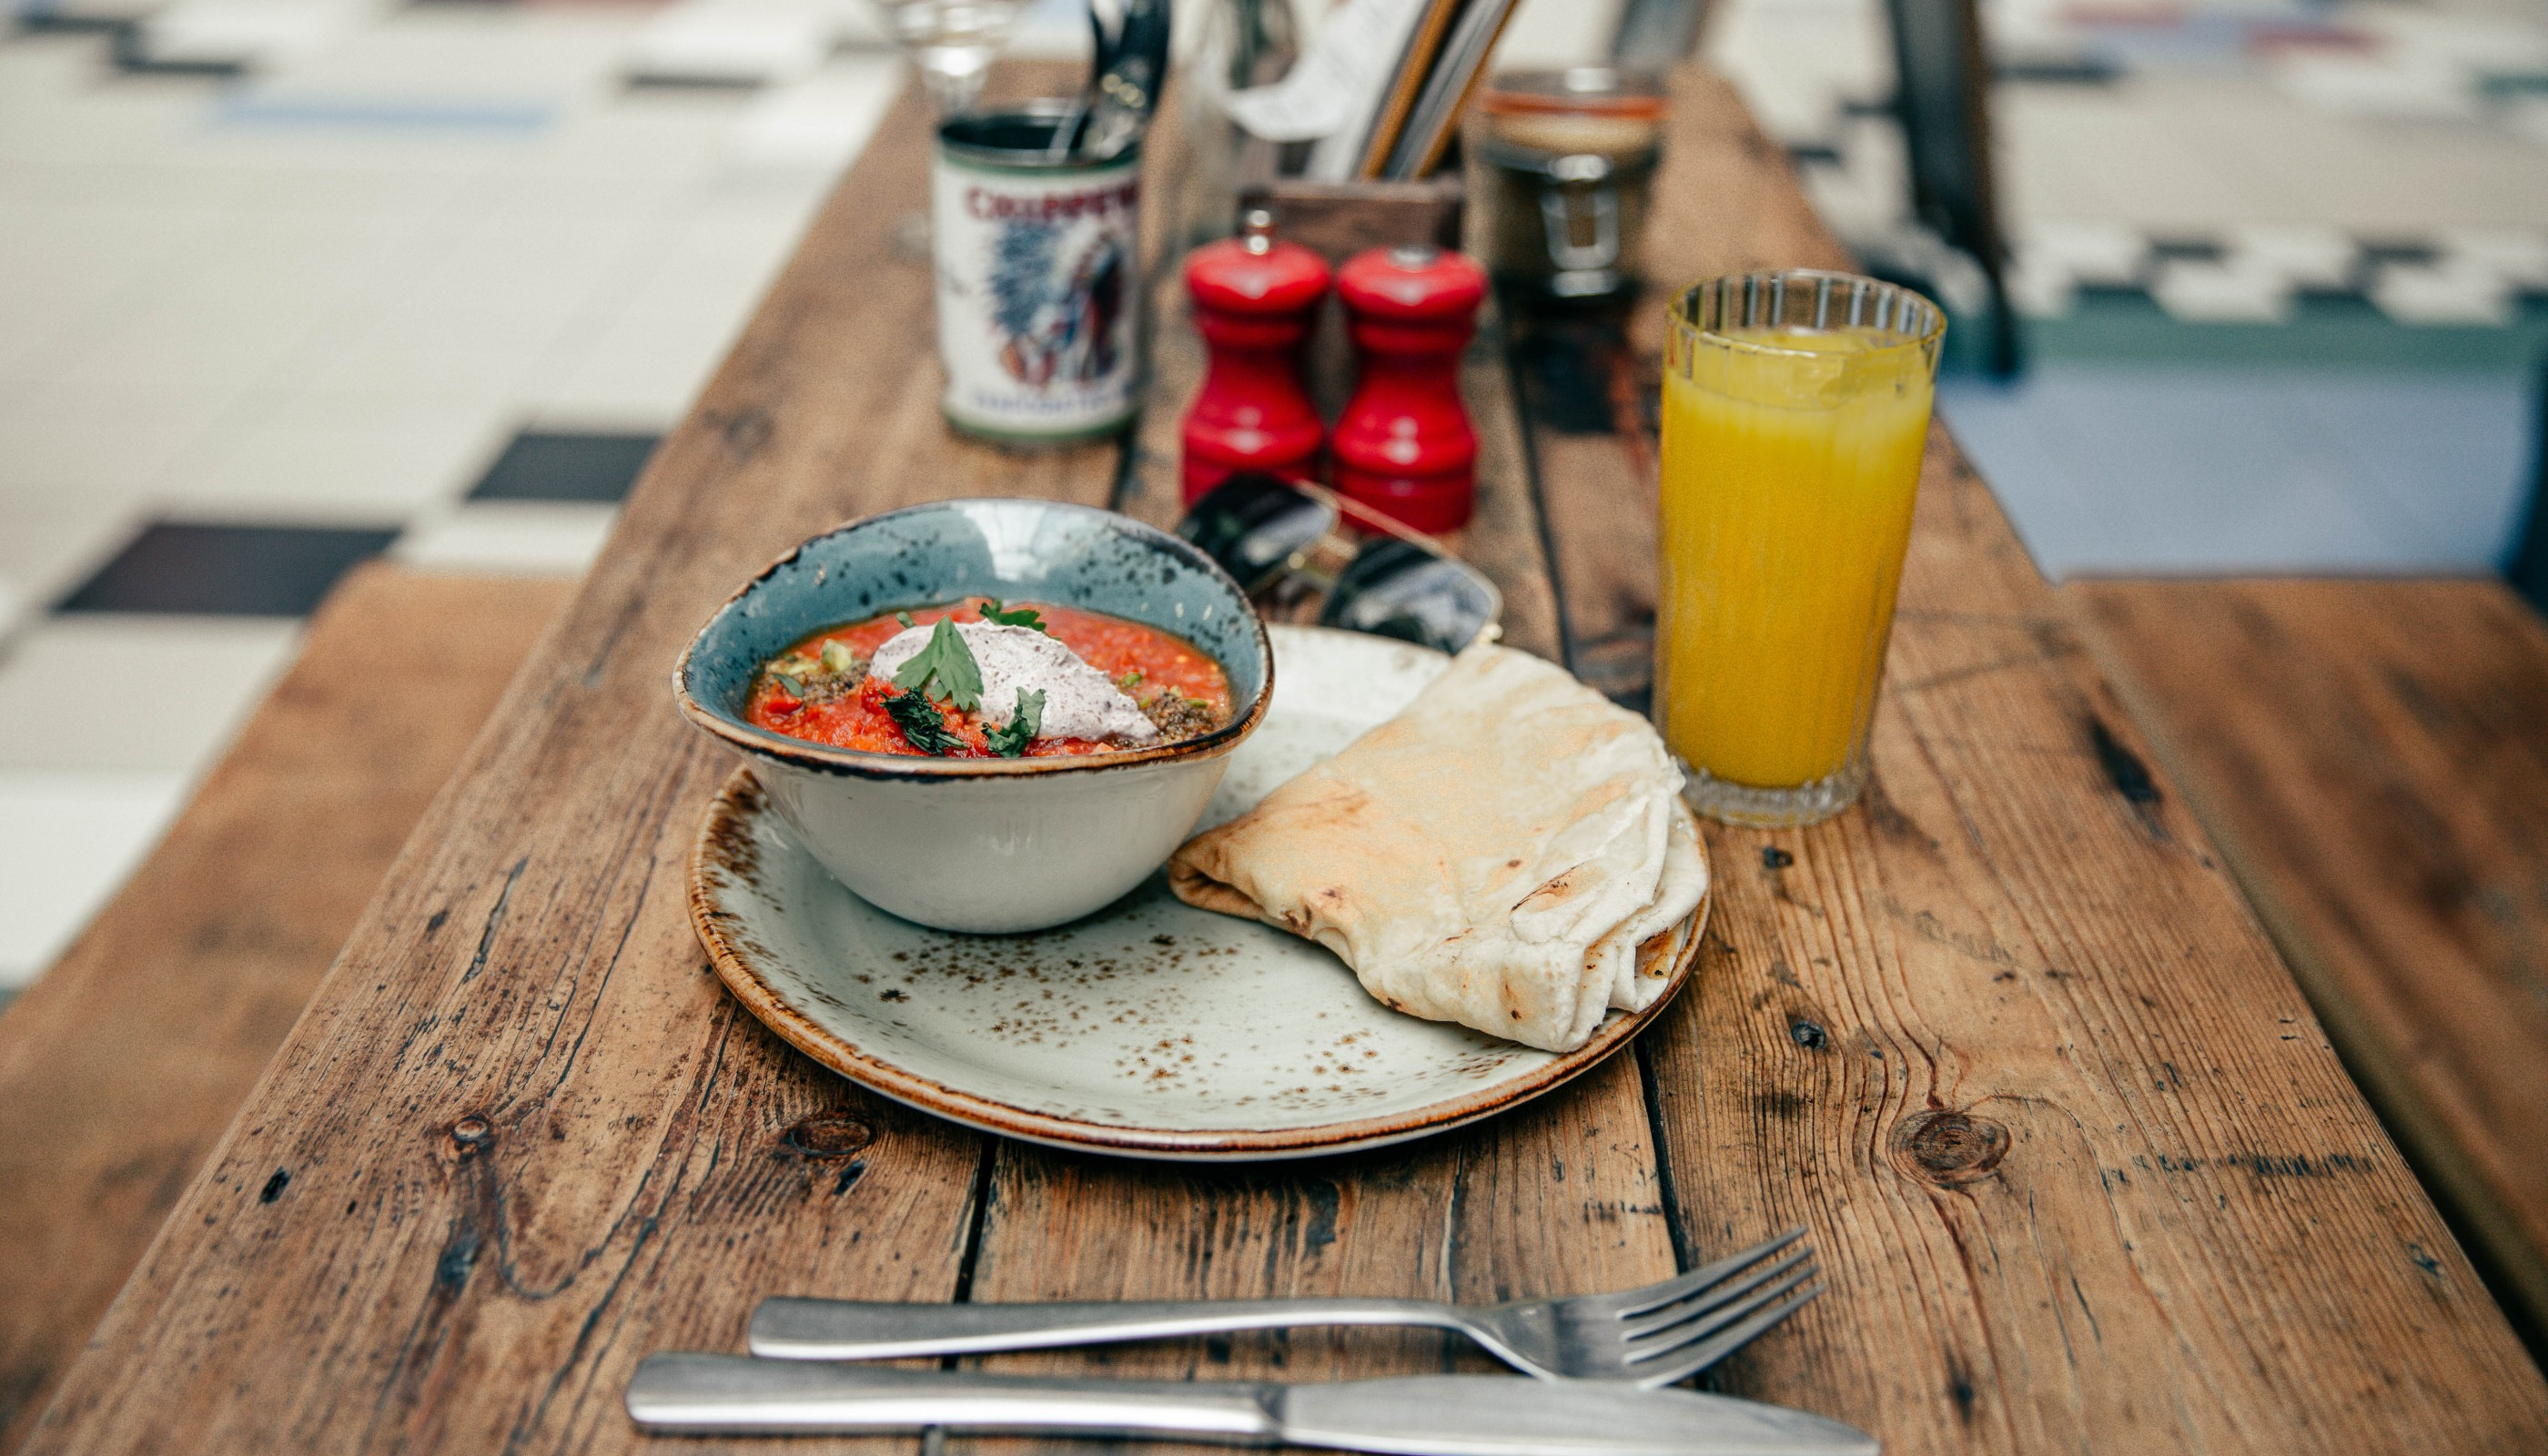 food image shot in Barton Arcade Manchester, the venue for Pot Kettle Black whose website we created